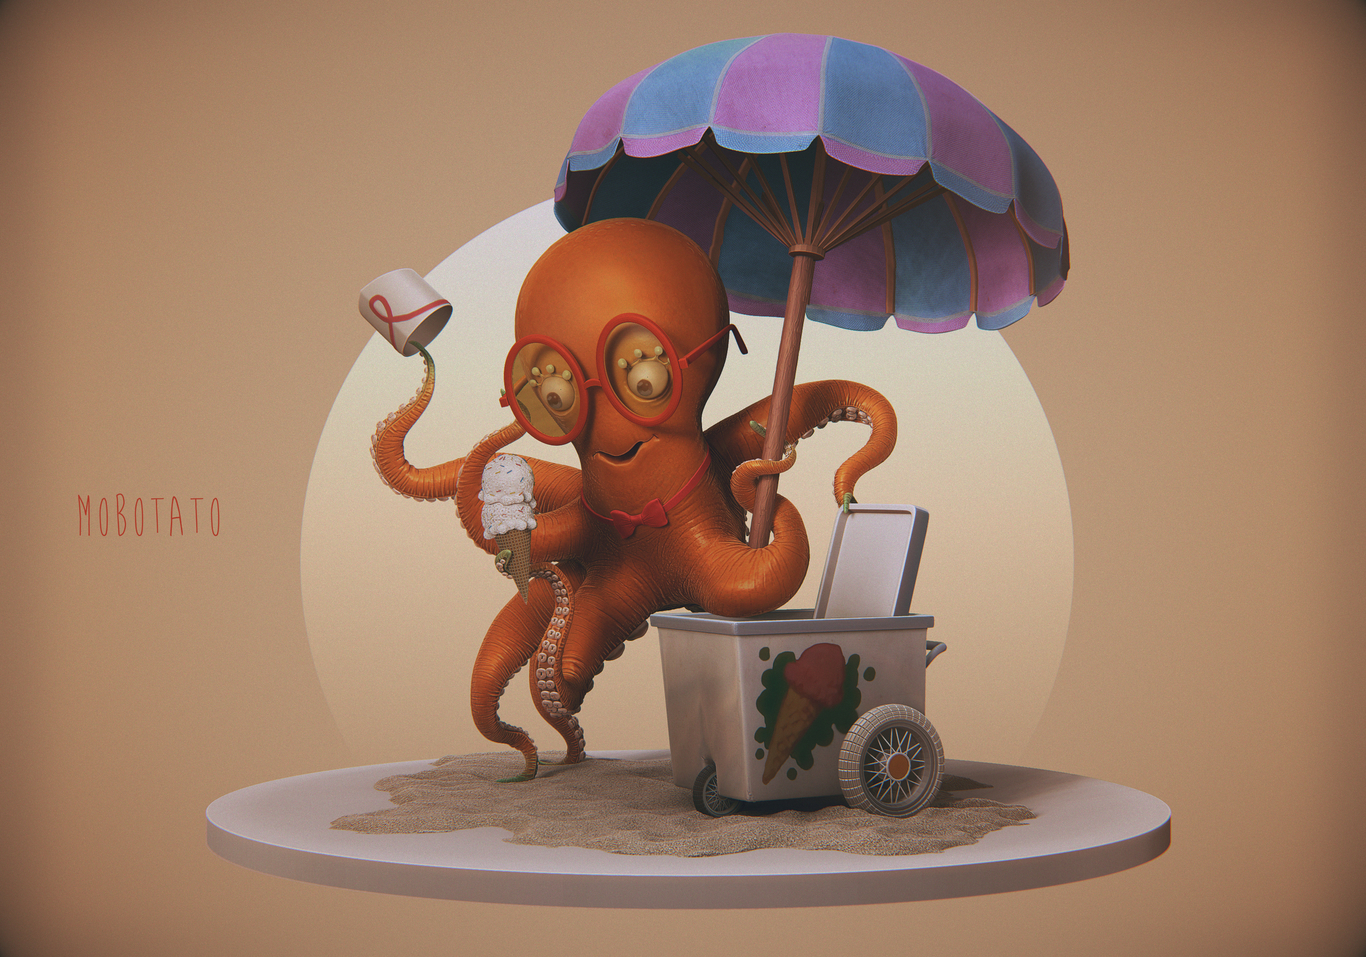 Mobotato octopus chus day at  1 3ce53baa r0nt